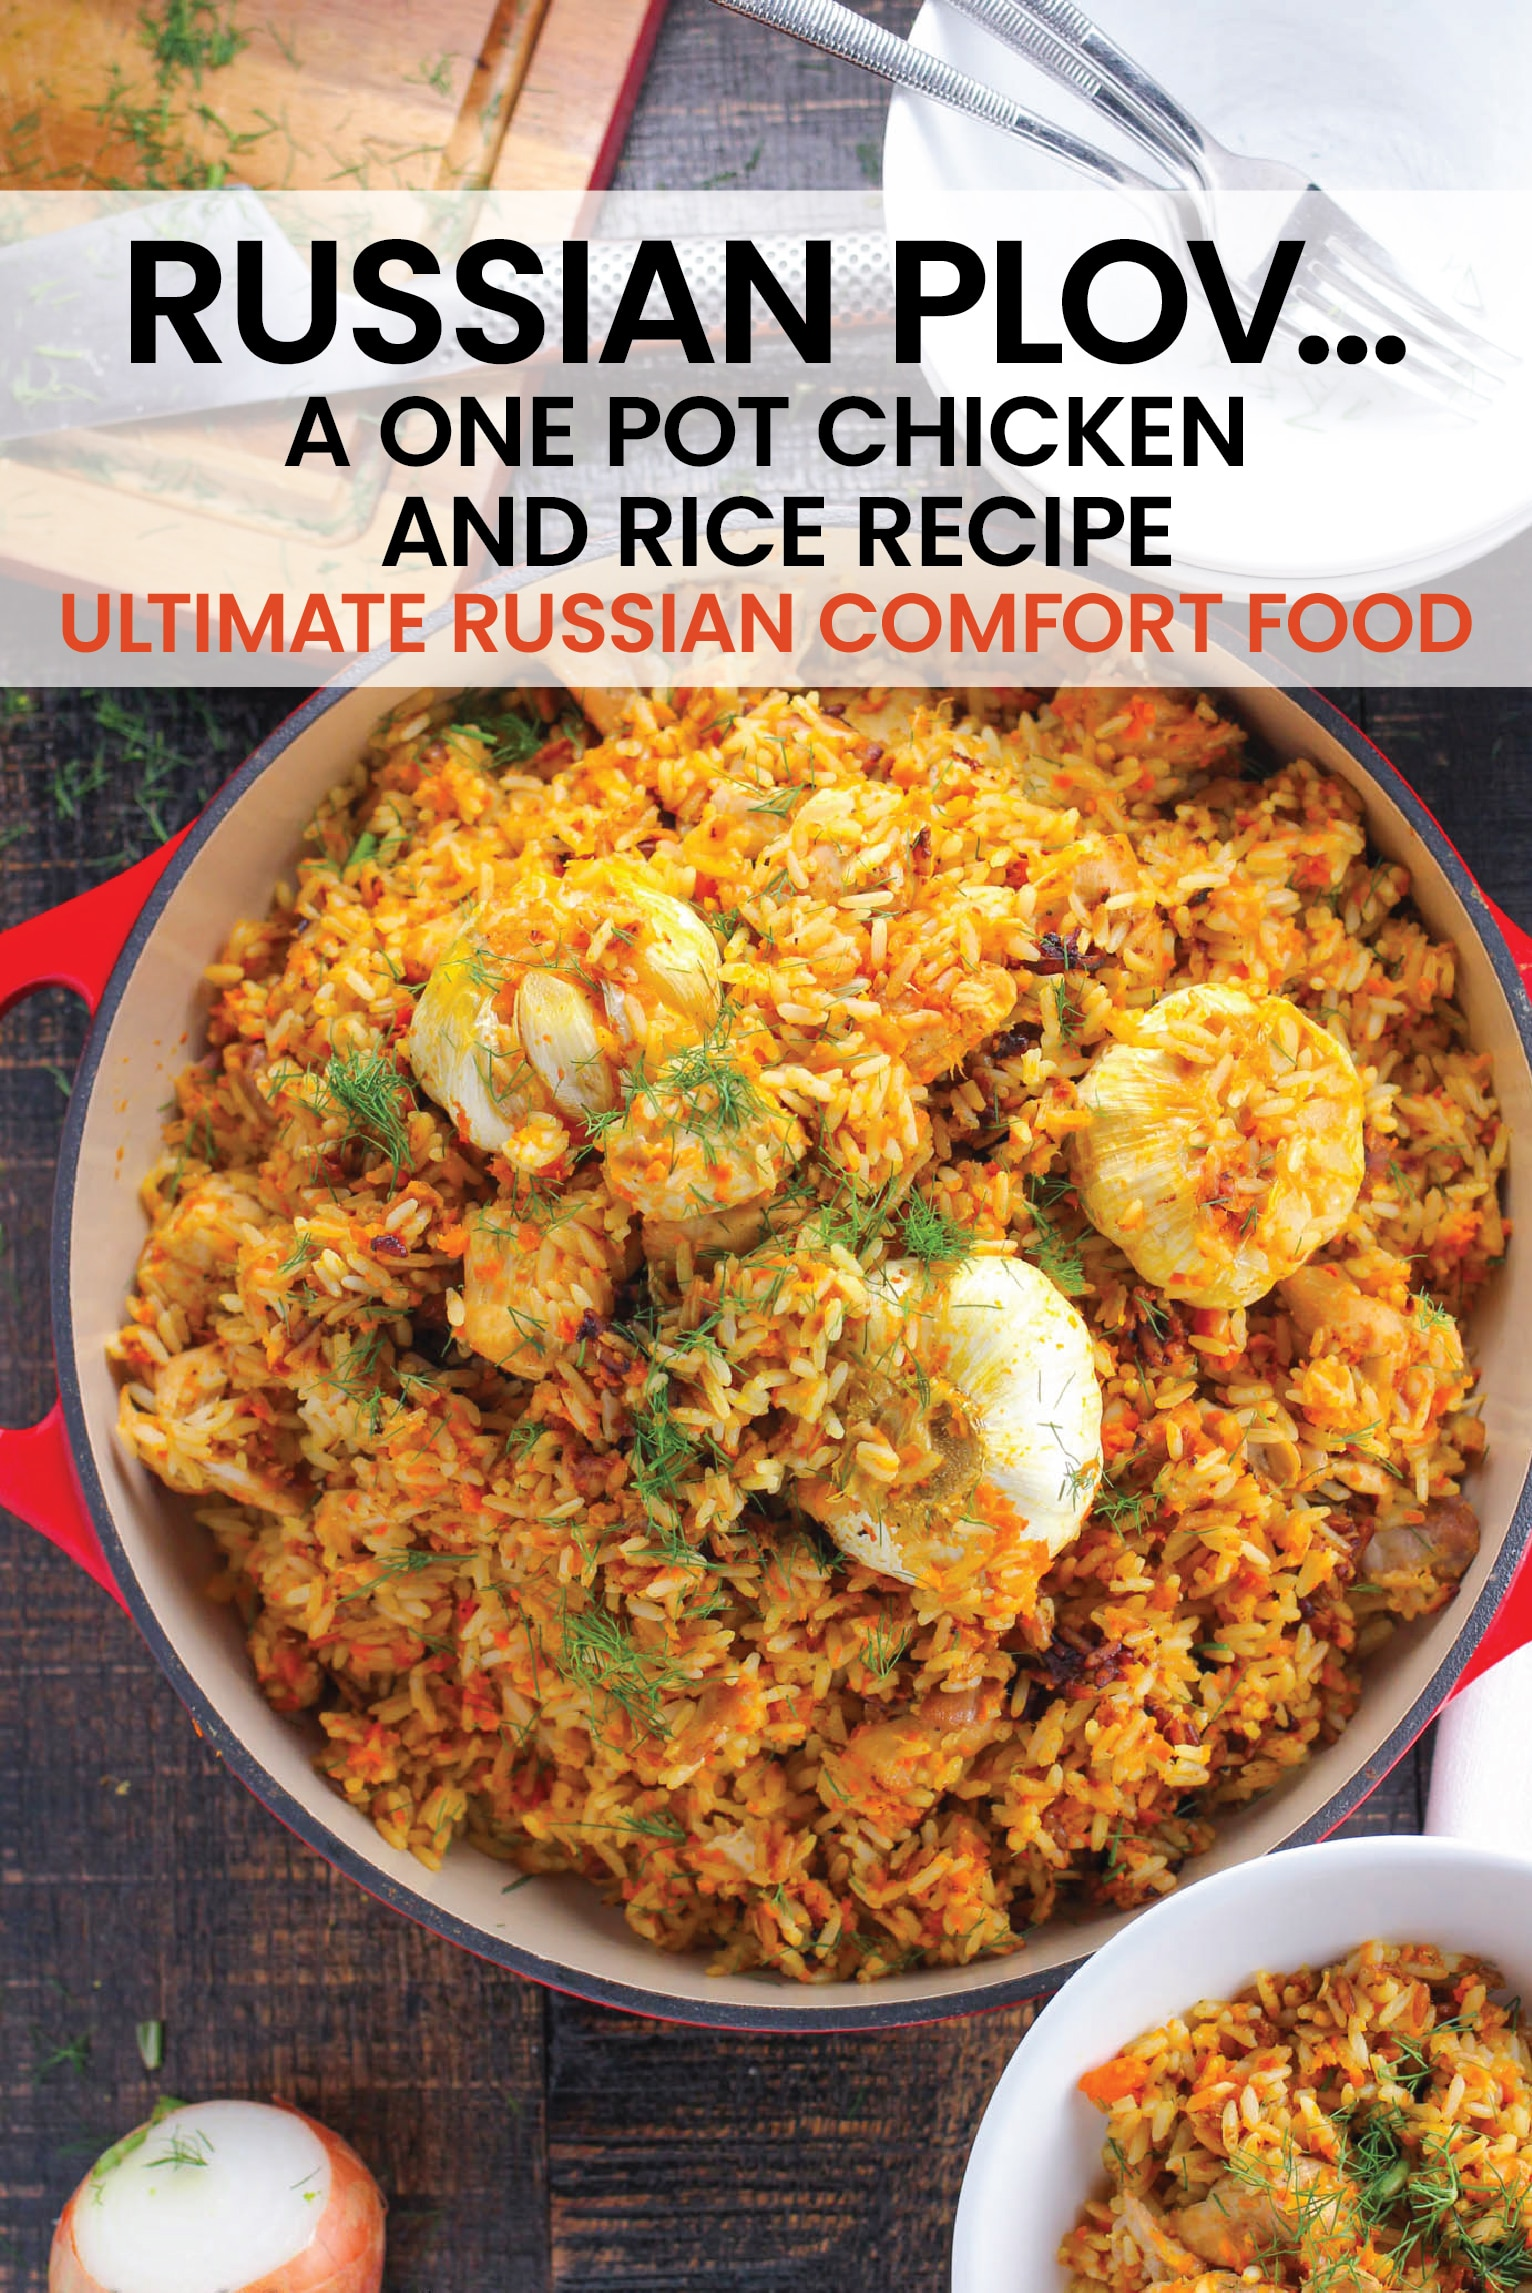 Plov is the ultimate Russian comfort food. It's a one pot chicken and rice recipe that is packed with flavors and spices and just takes a few steps to reach ultimate rice perfection. #rice